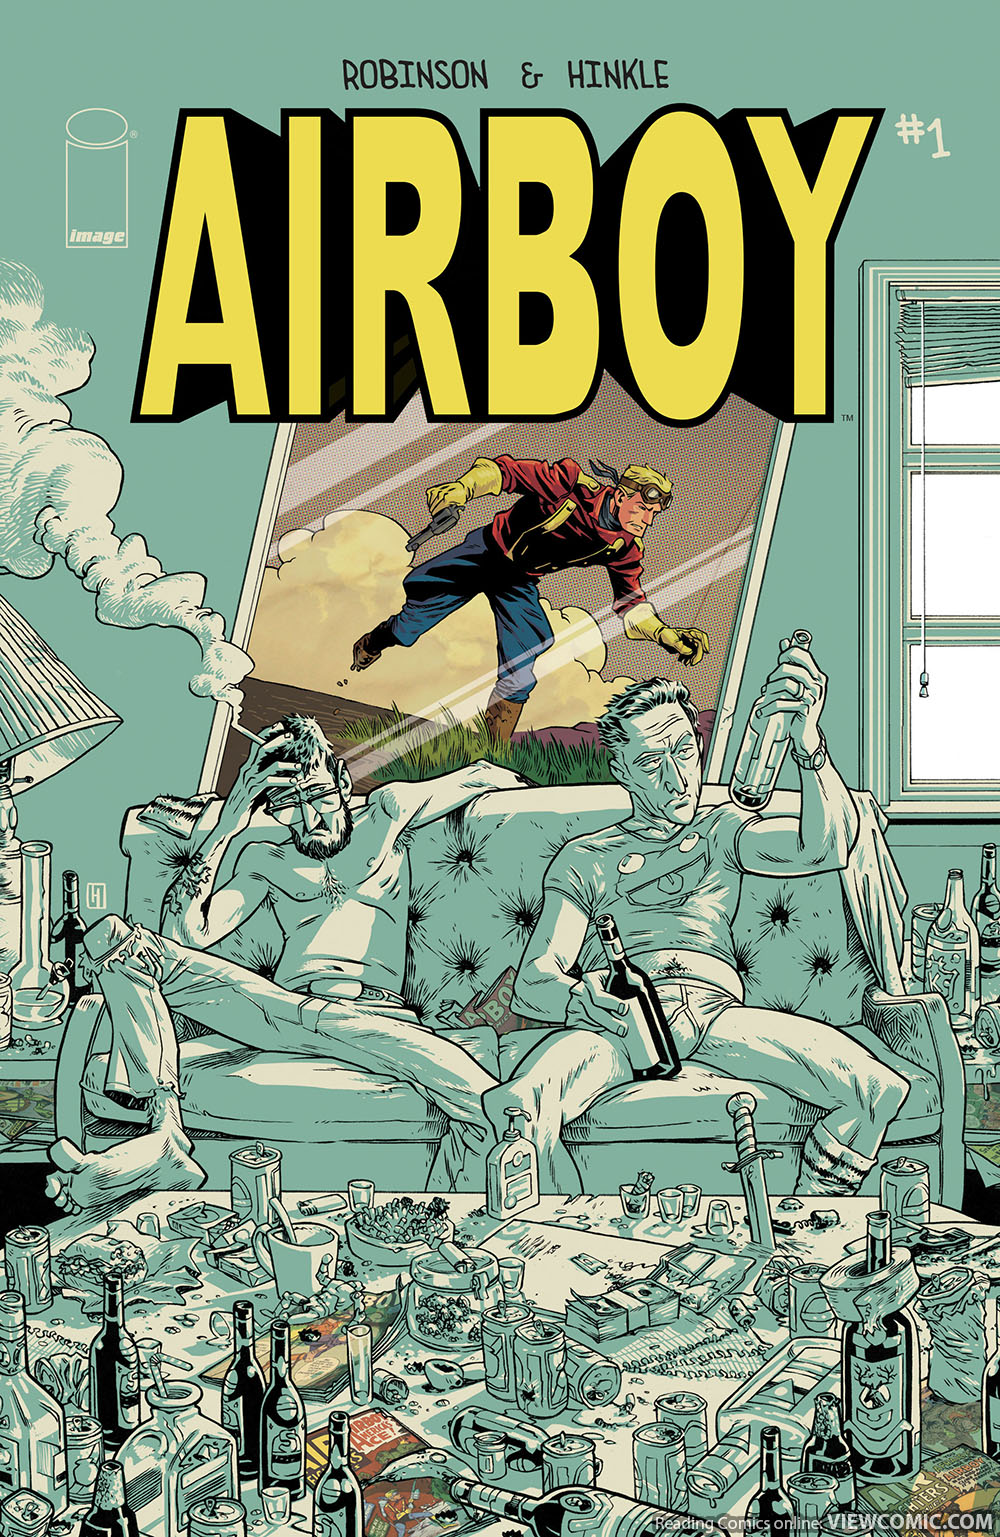 Dicks Hate Comics: Airboy is Entourage for Middle Aged Comics Creators